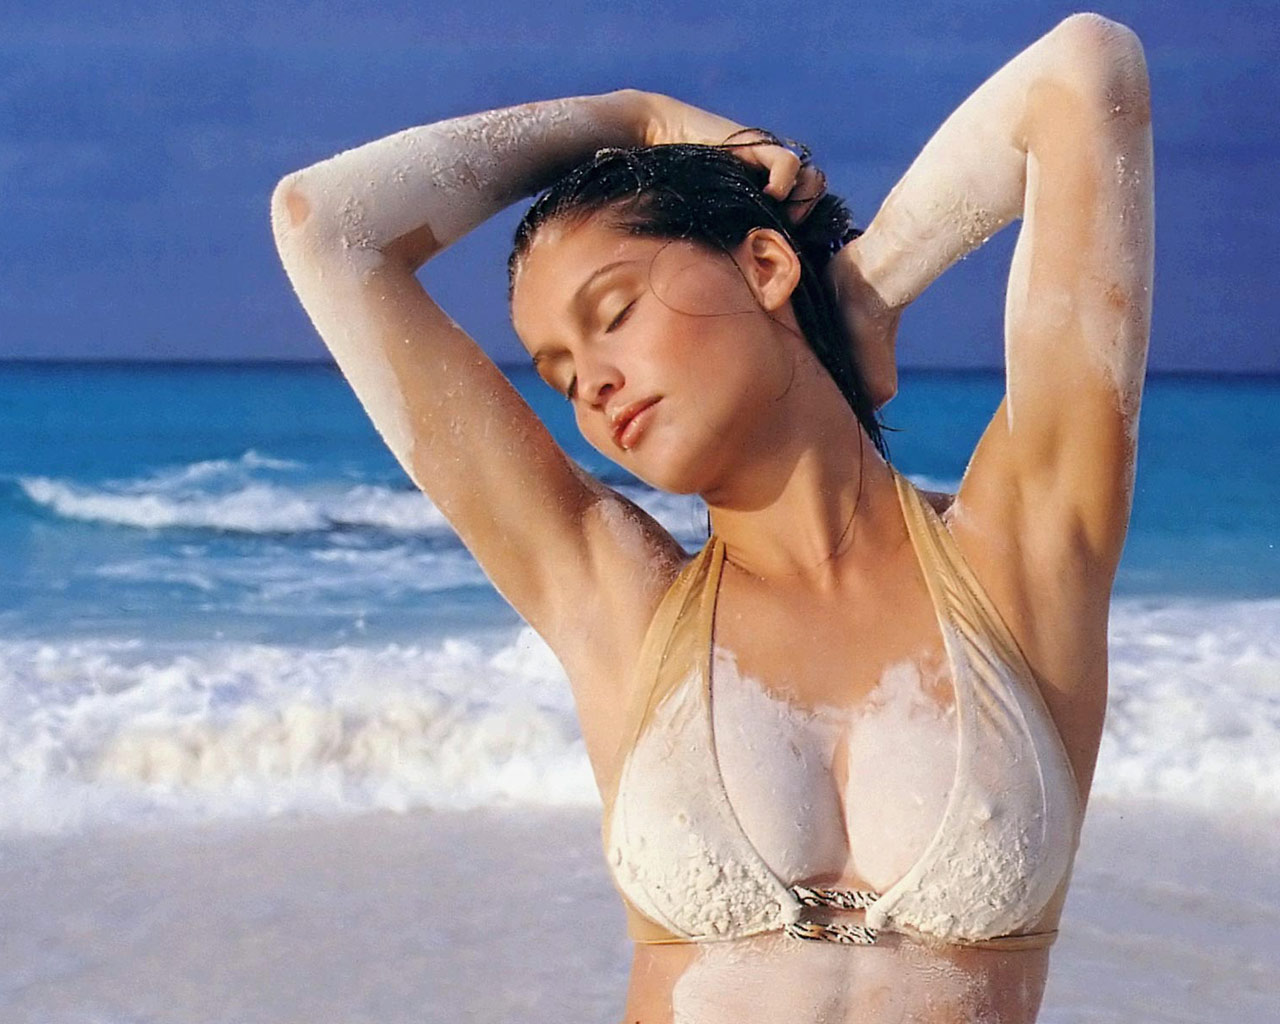 south mp3 songs: Laetitia Casta hot hd wallpapers